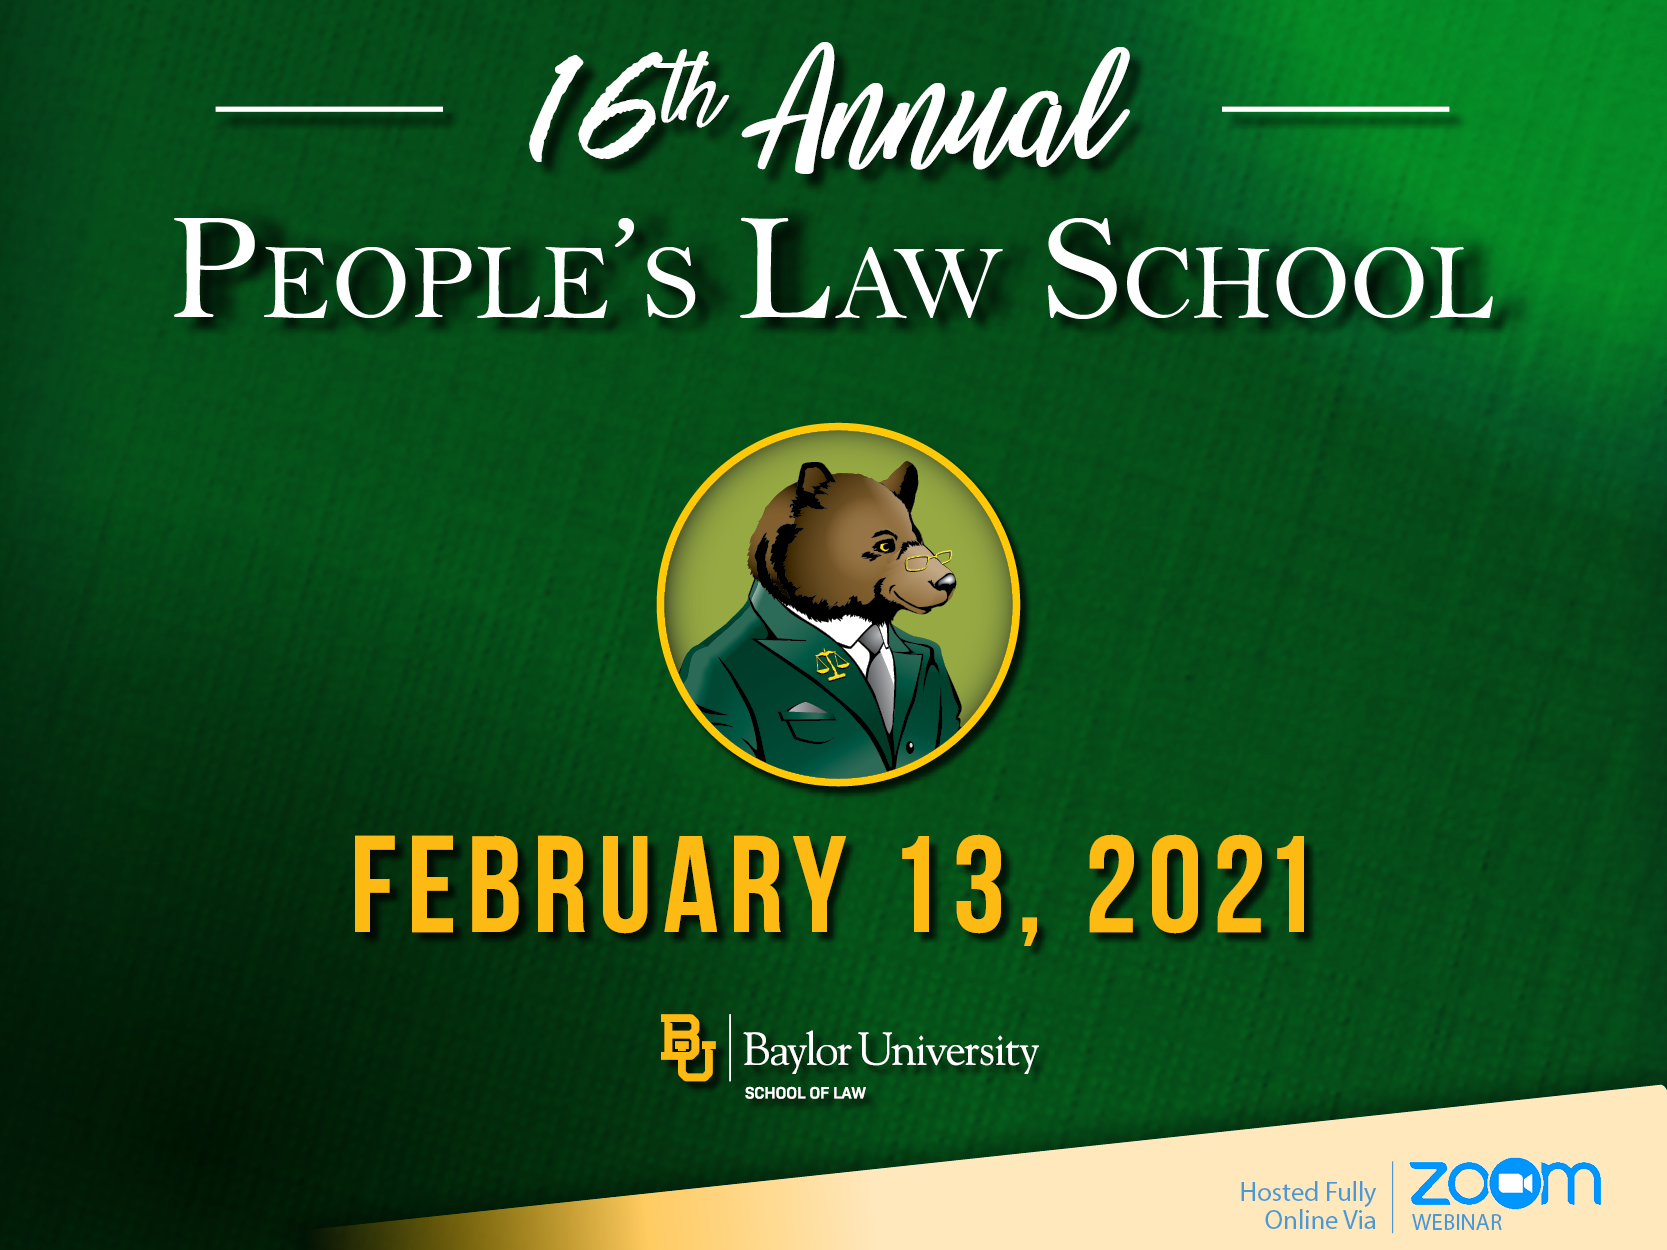 2021 People's Law School at Baylor Law